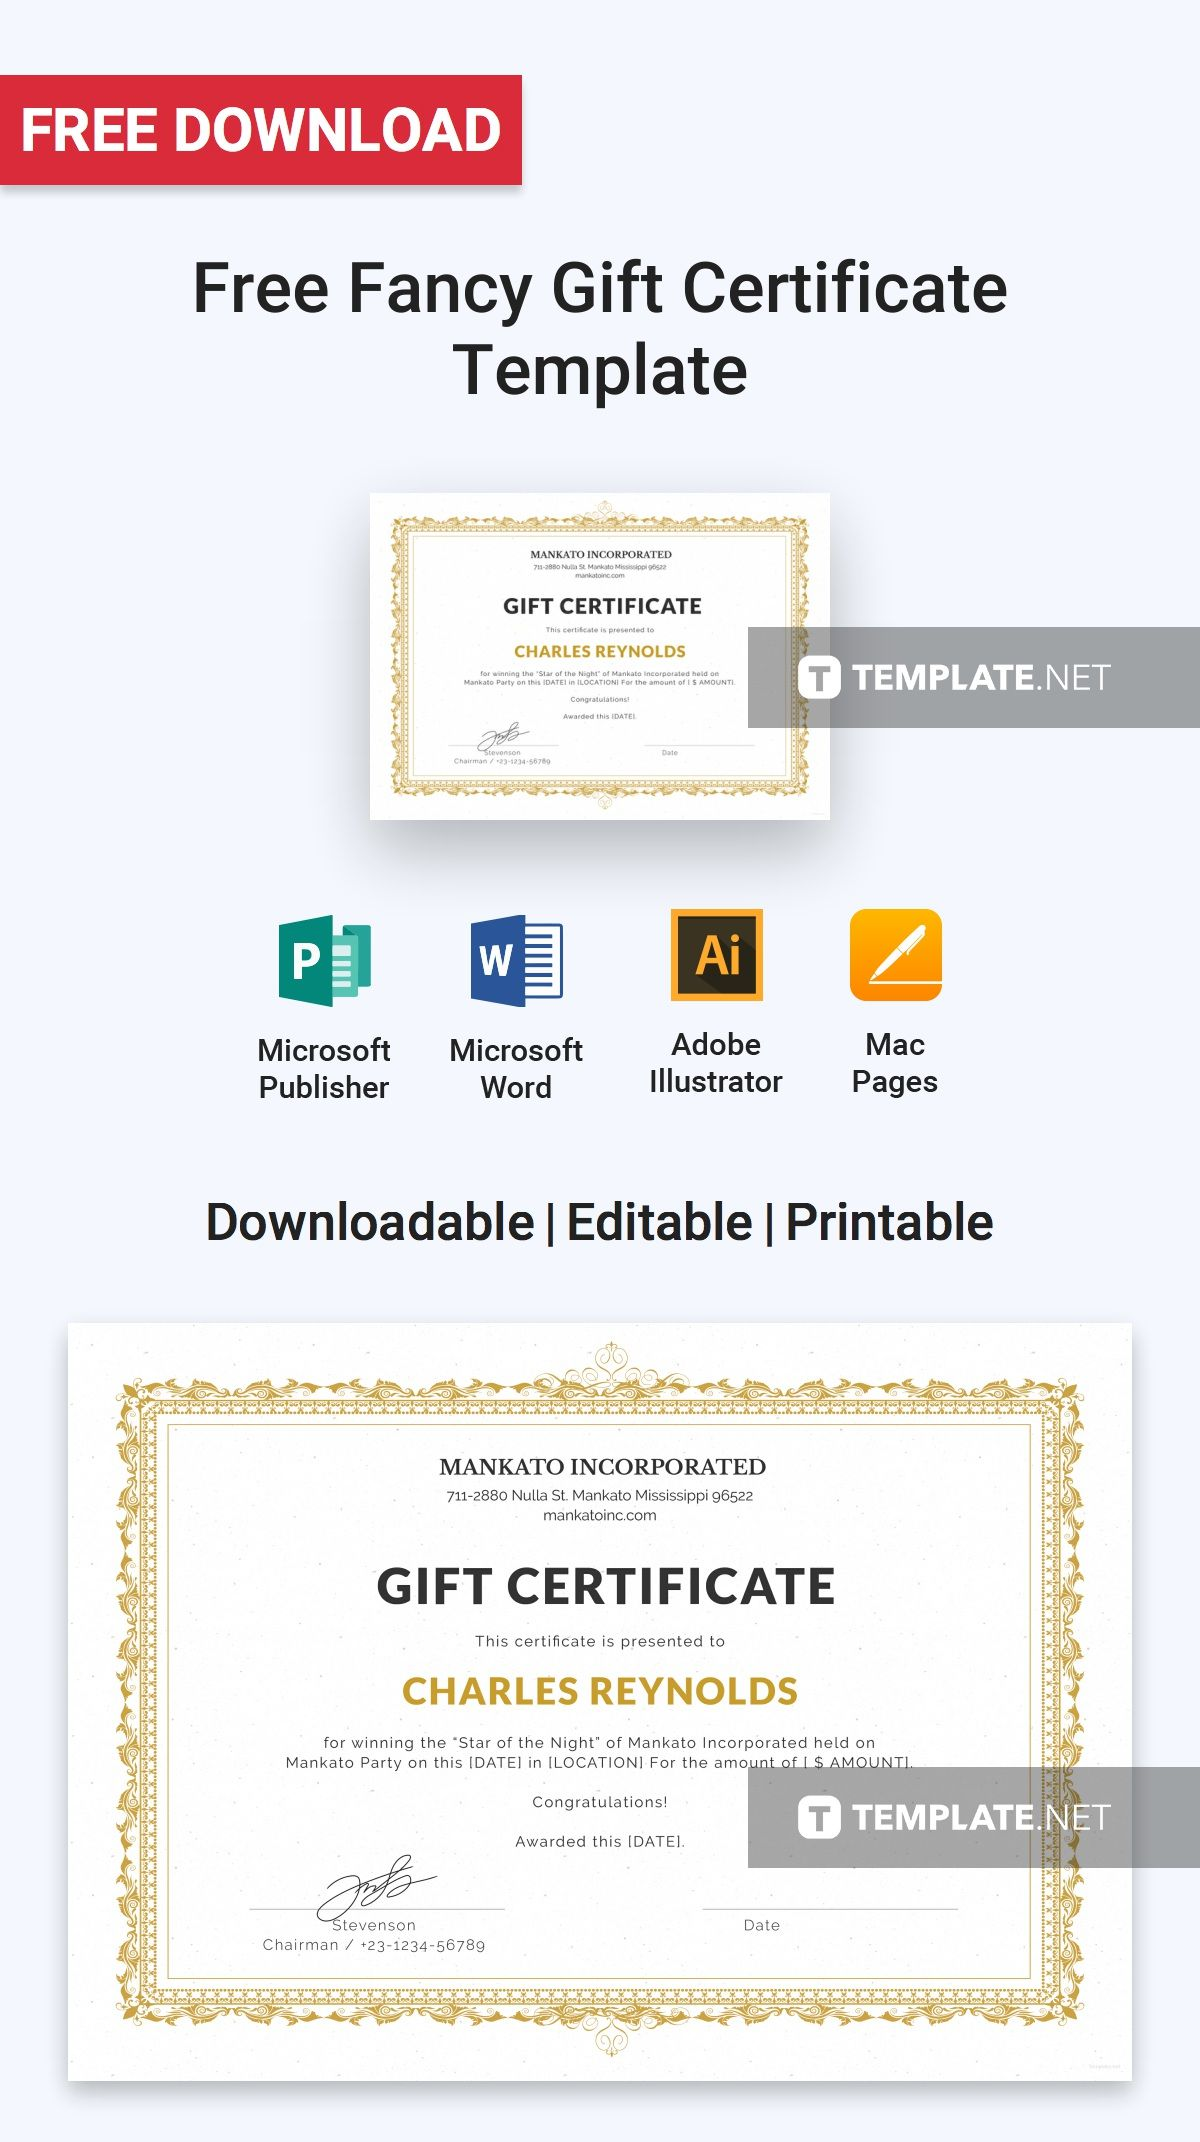 free fancy gift certificate gift certificate template gift